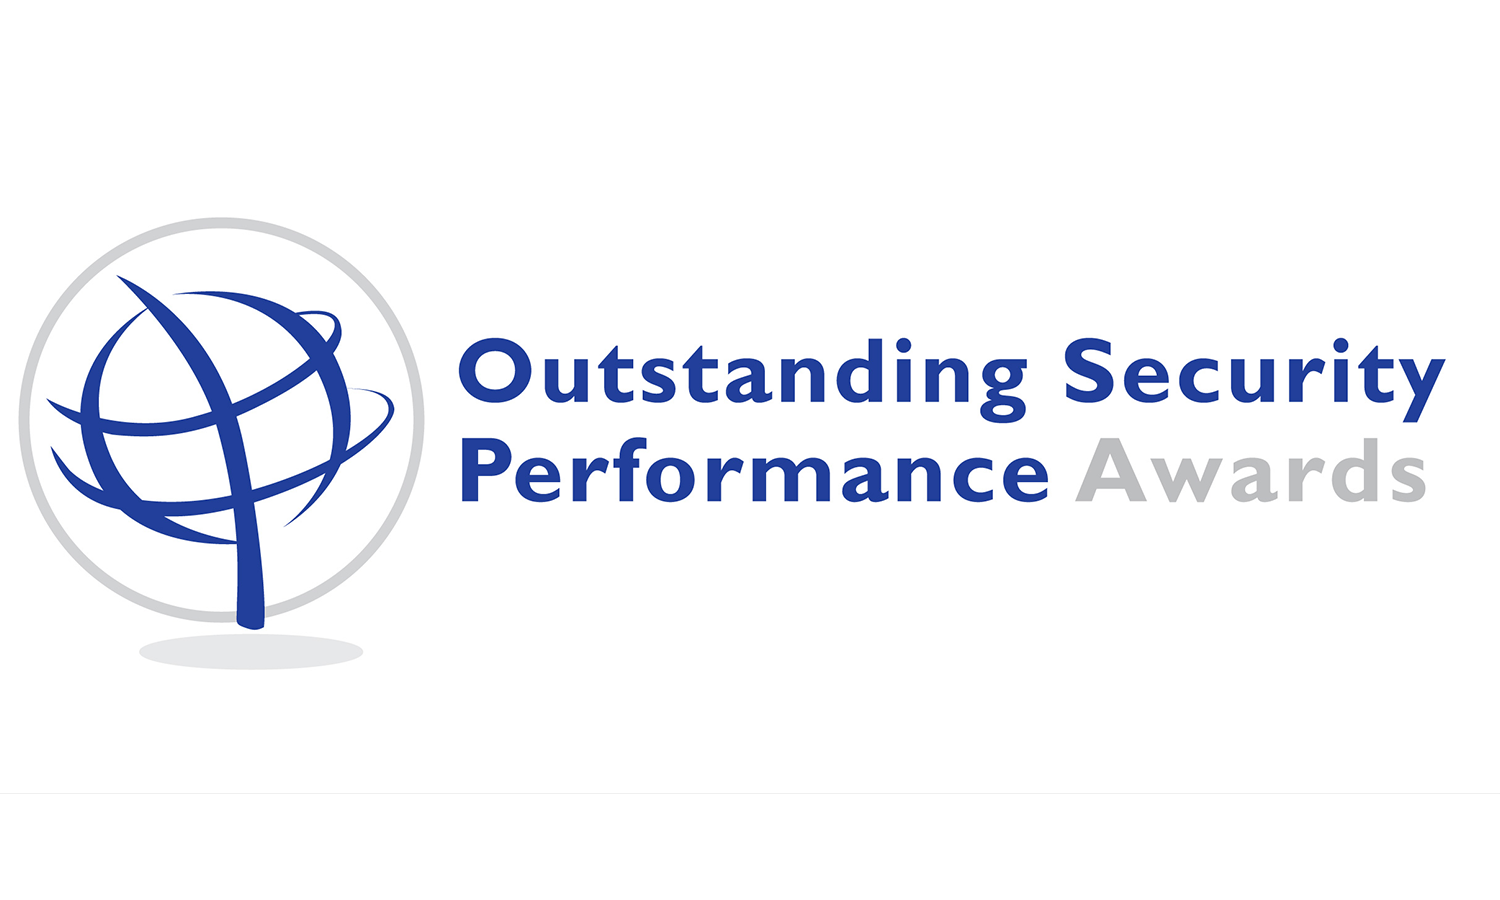 Outstanding Security Performance Awards